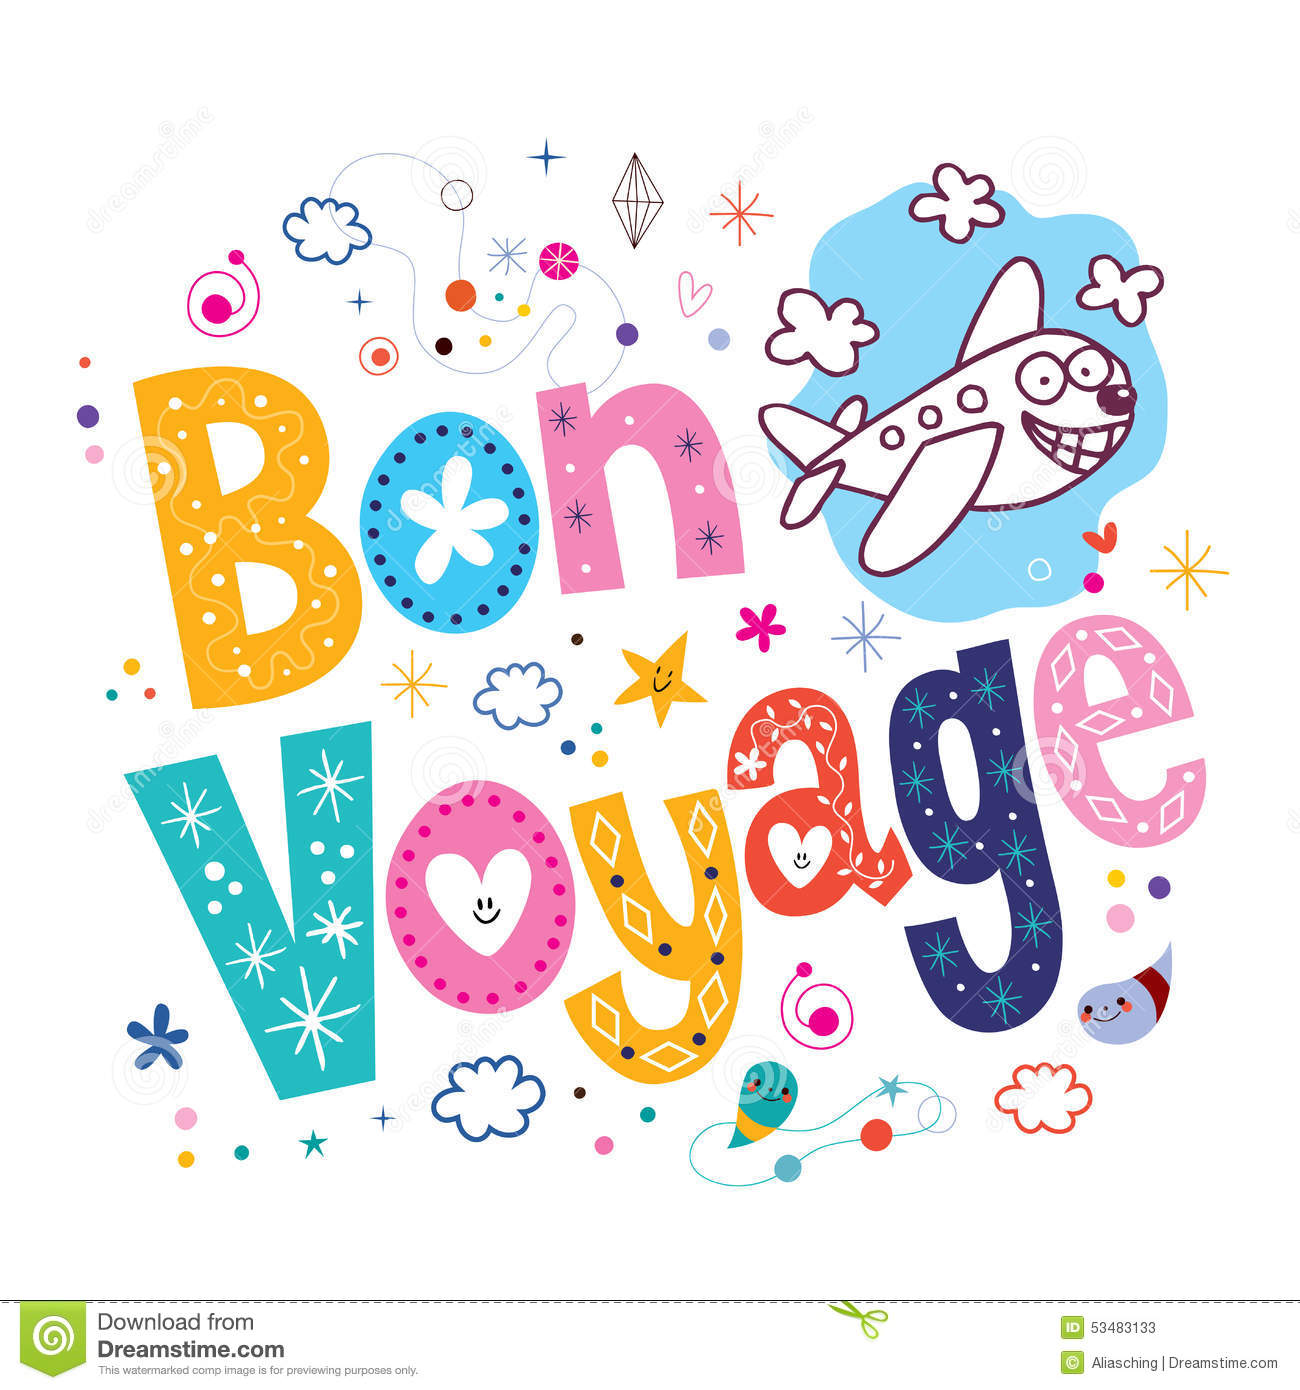 Bon Voyage Royalty Free Stock Photography - Image: 20802987